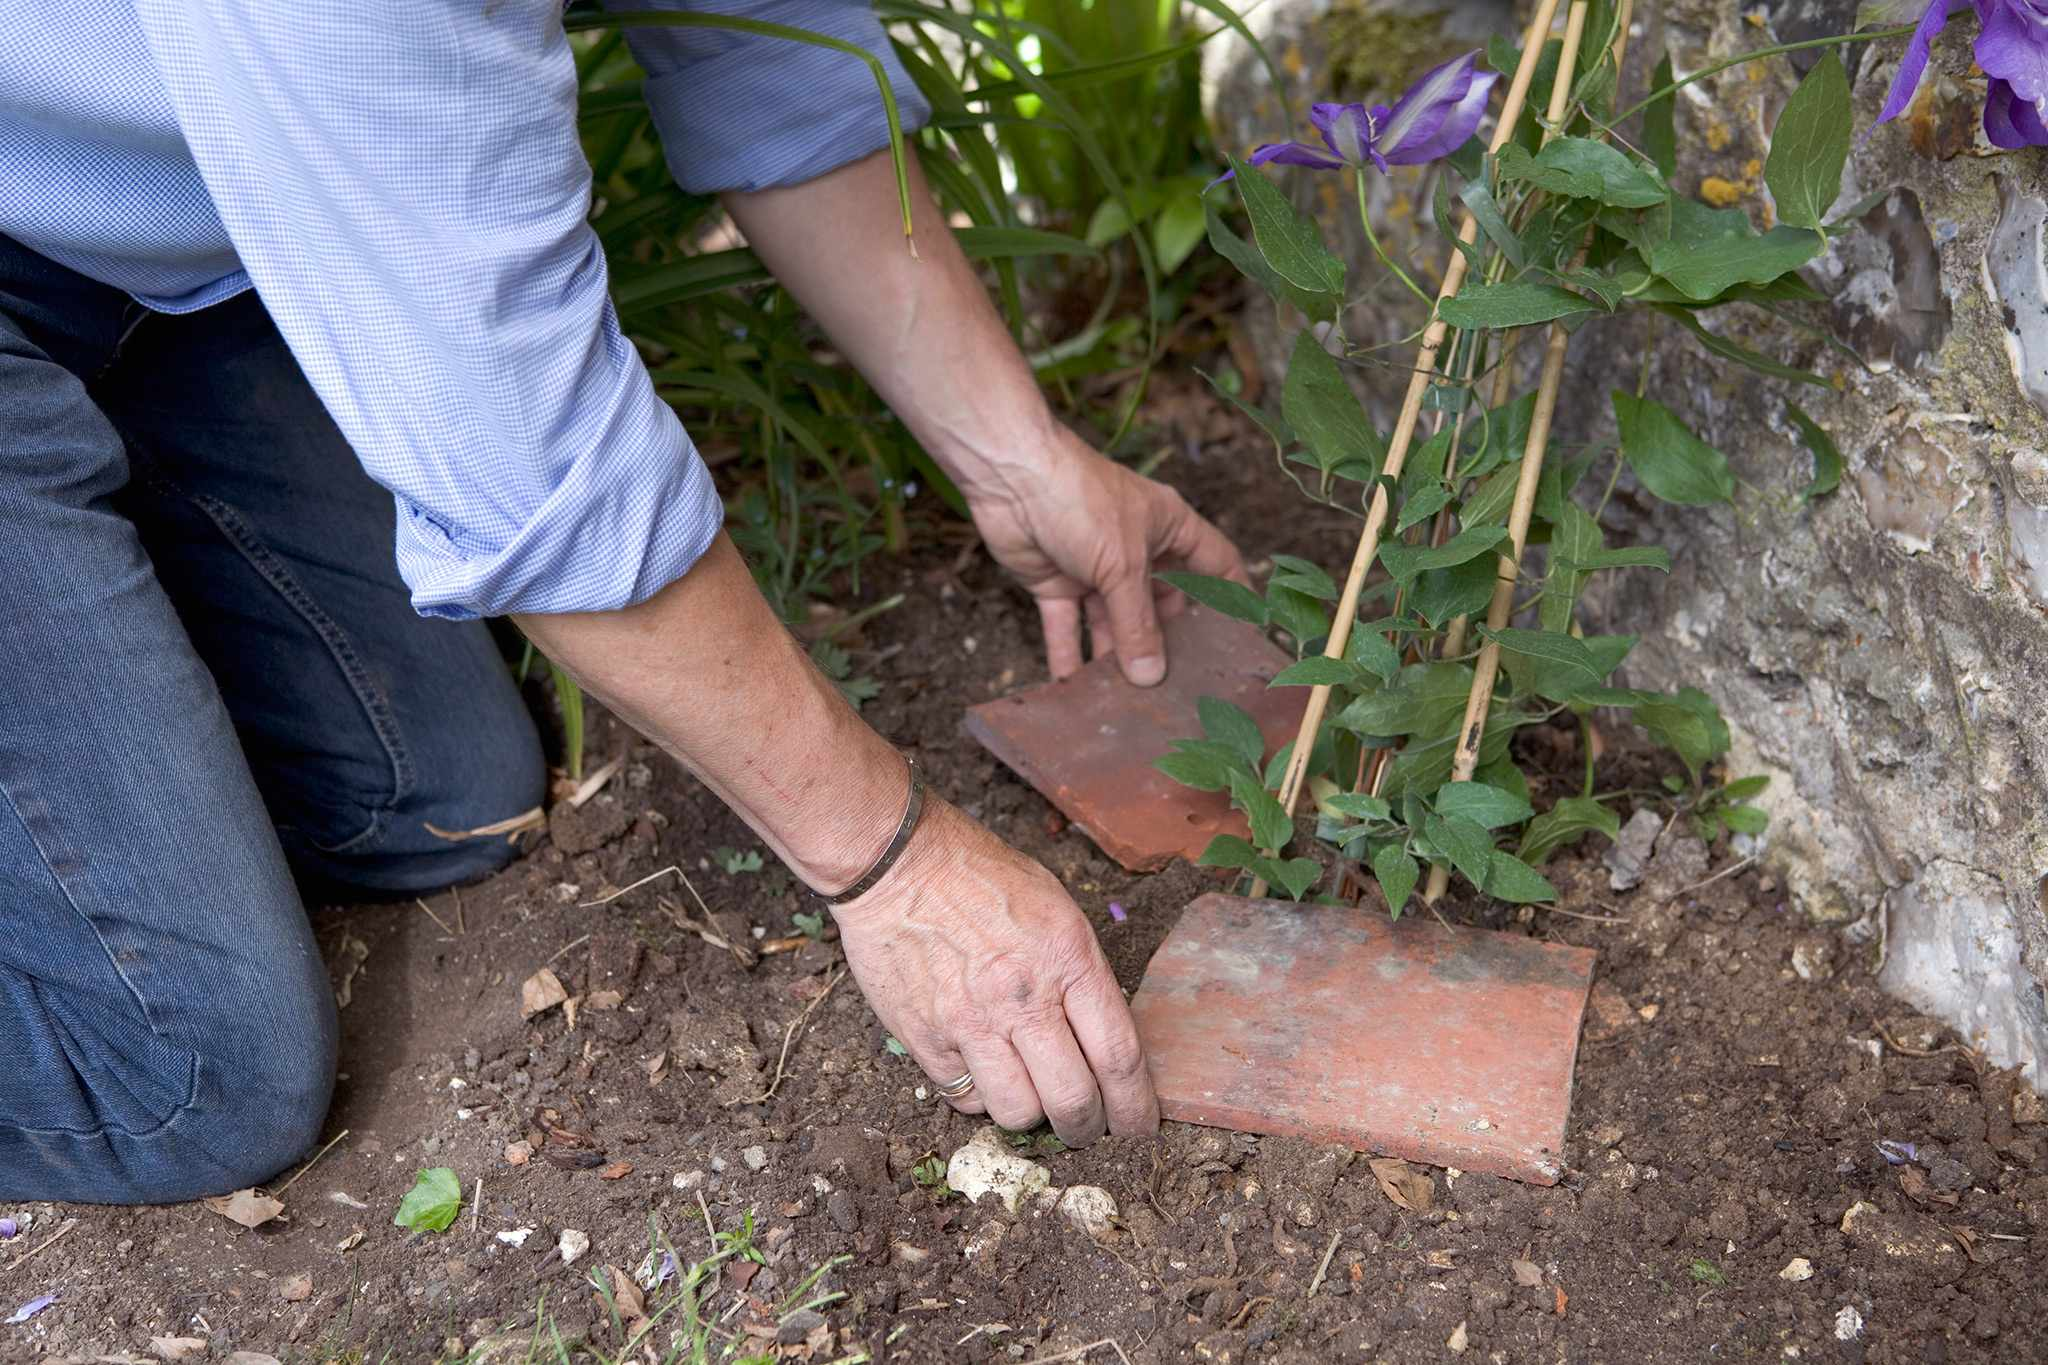 Placing tiles over the roots